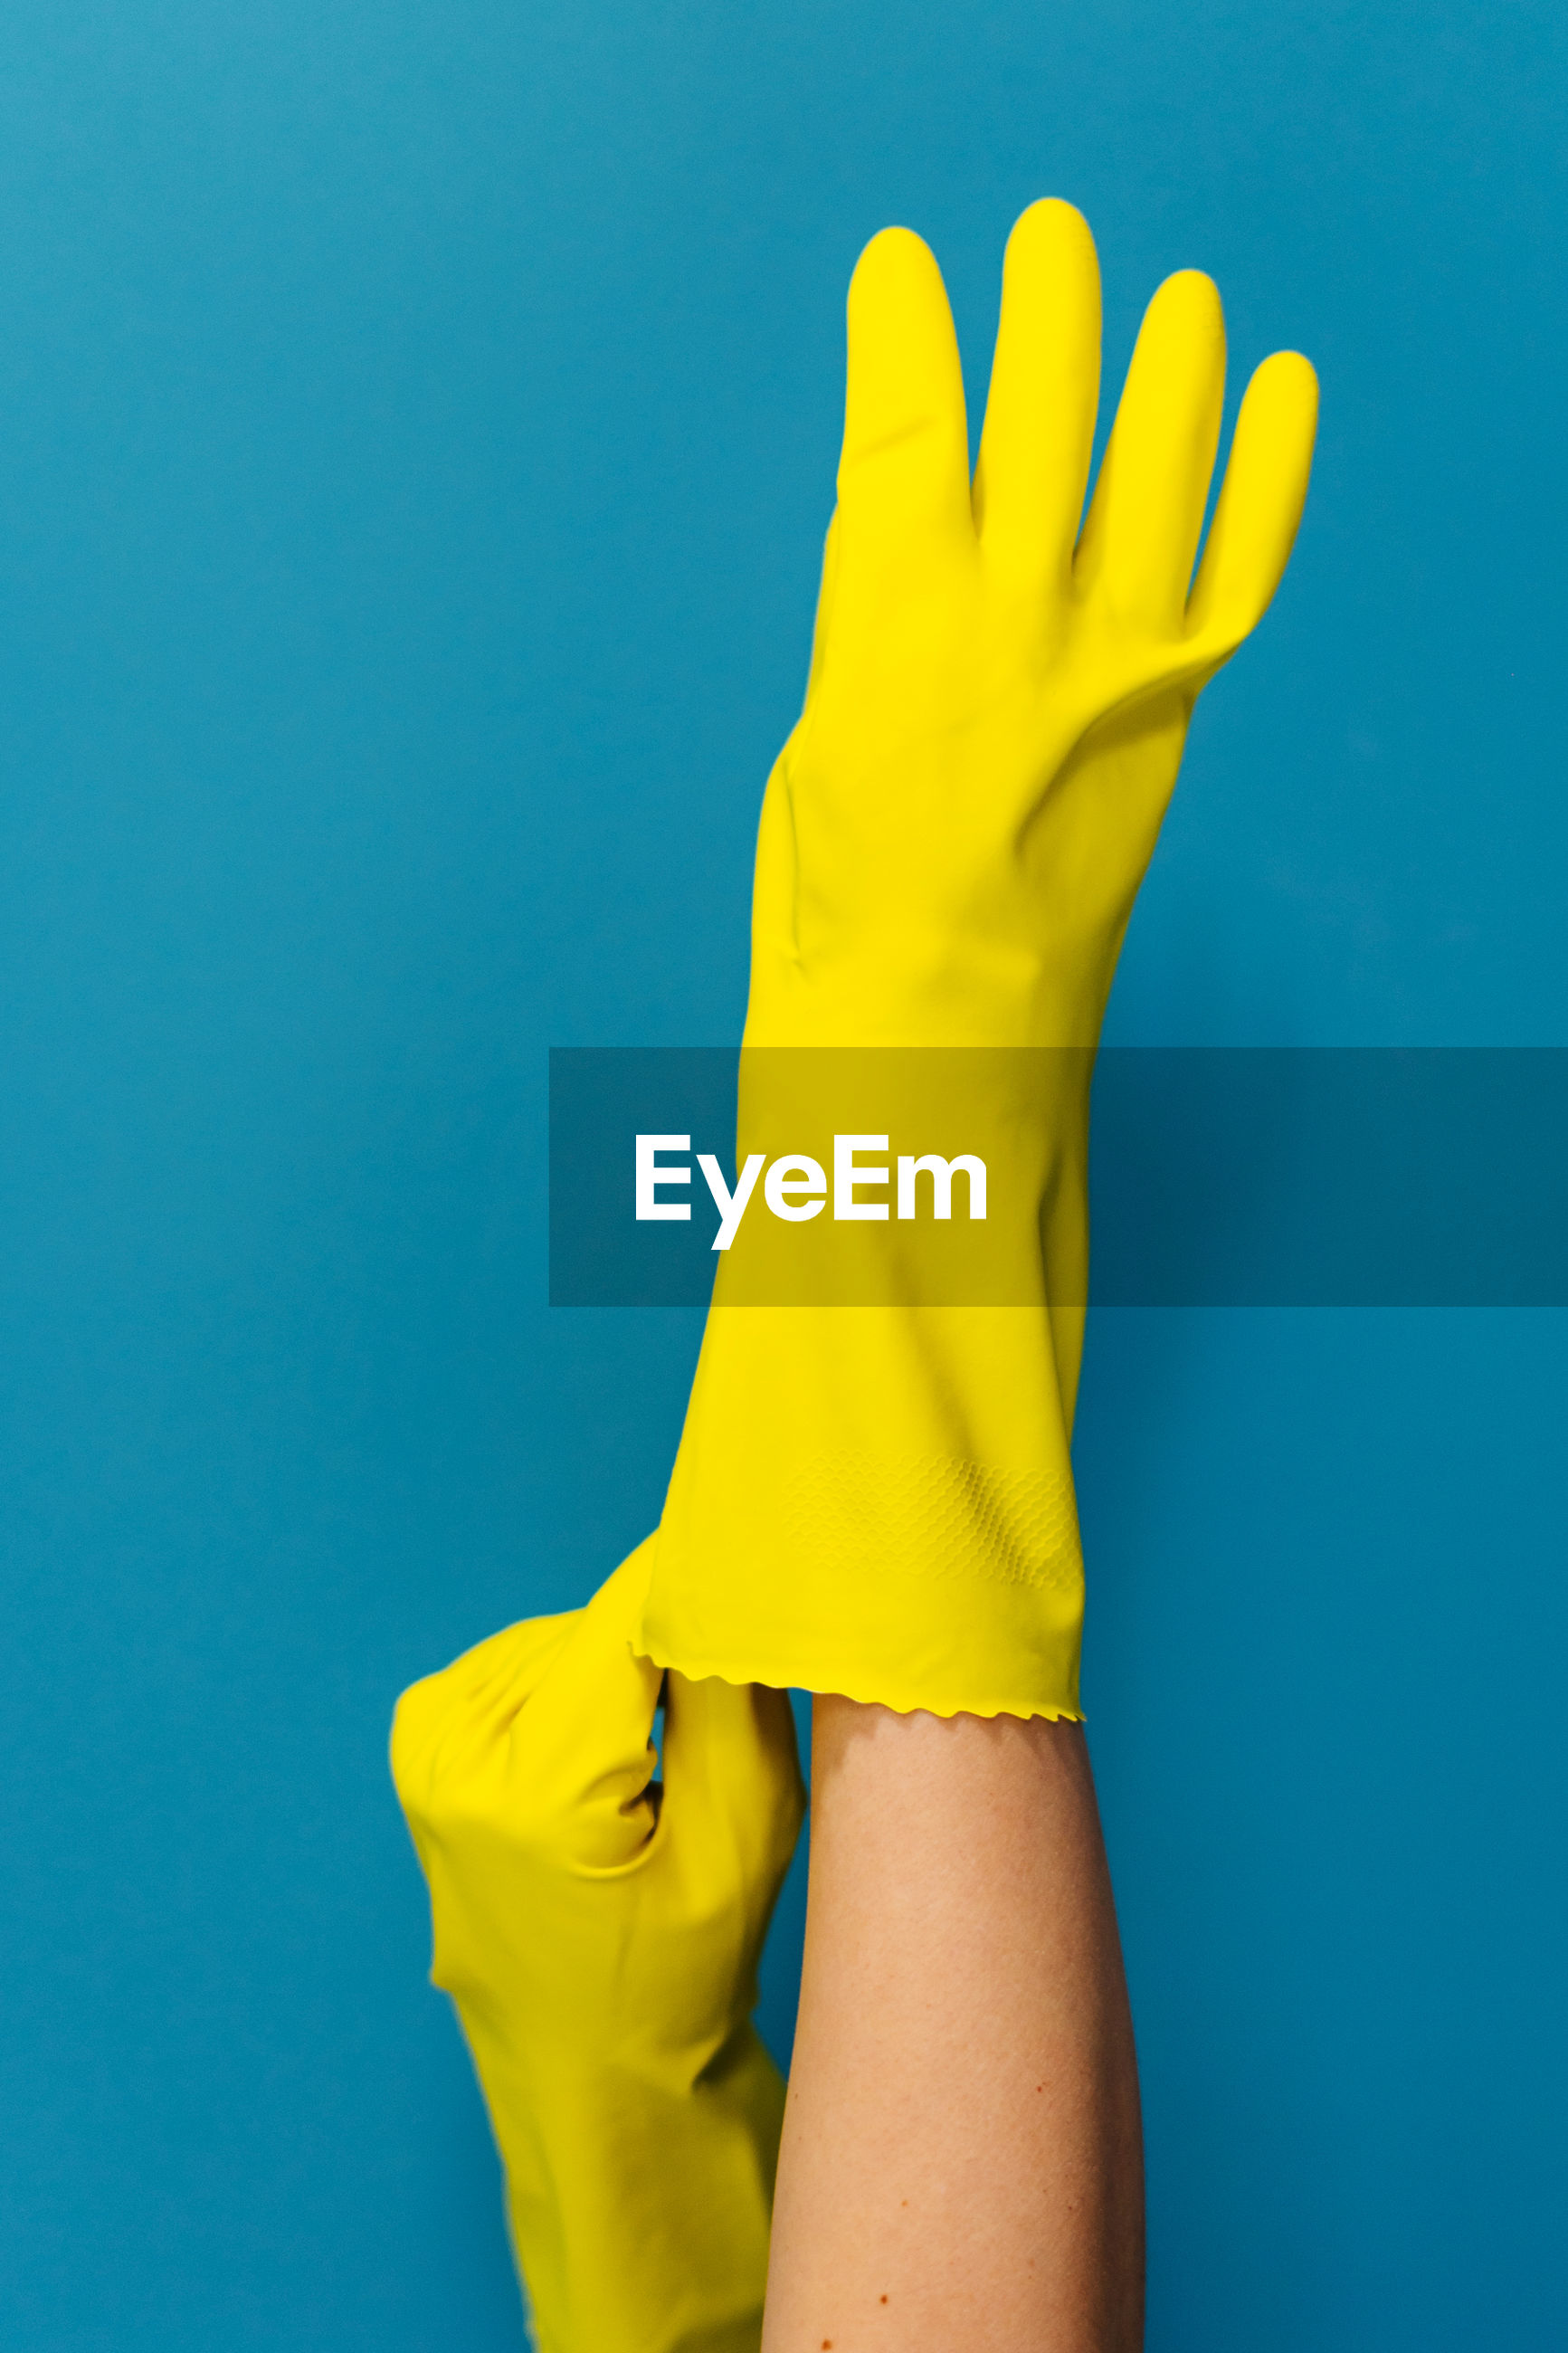 Cropped hand of woman wearing glove against blue background